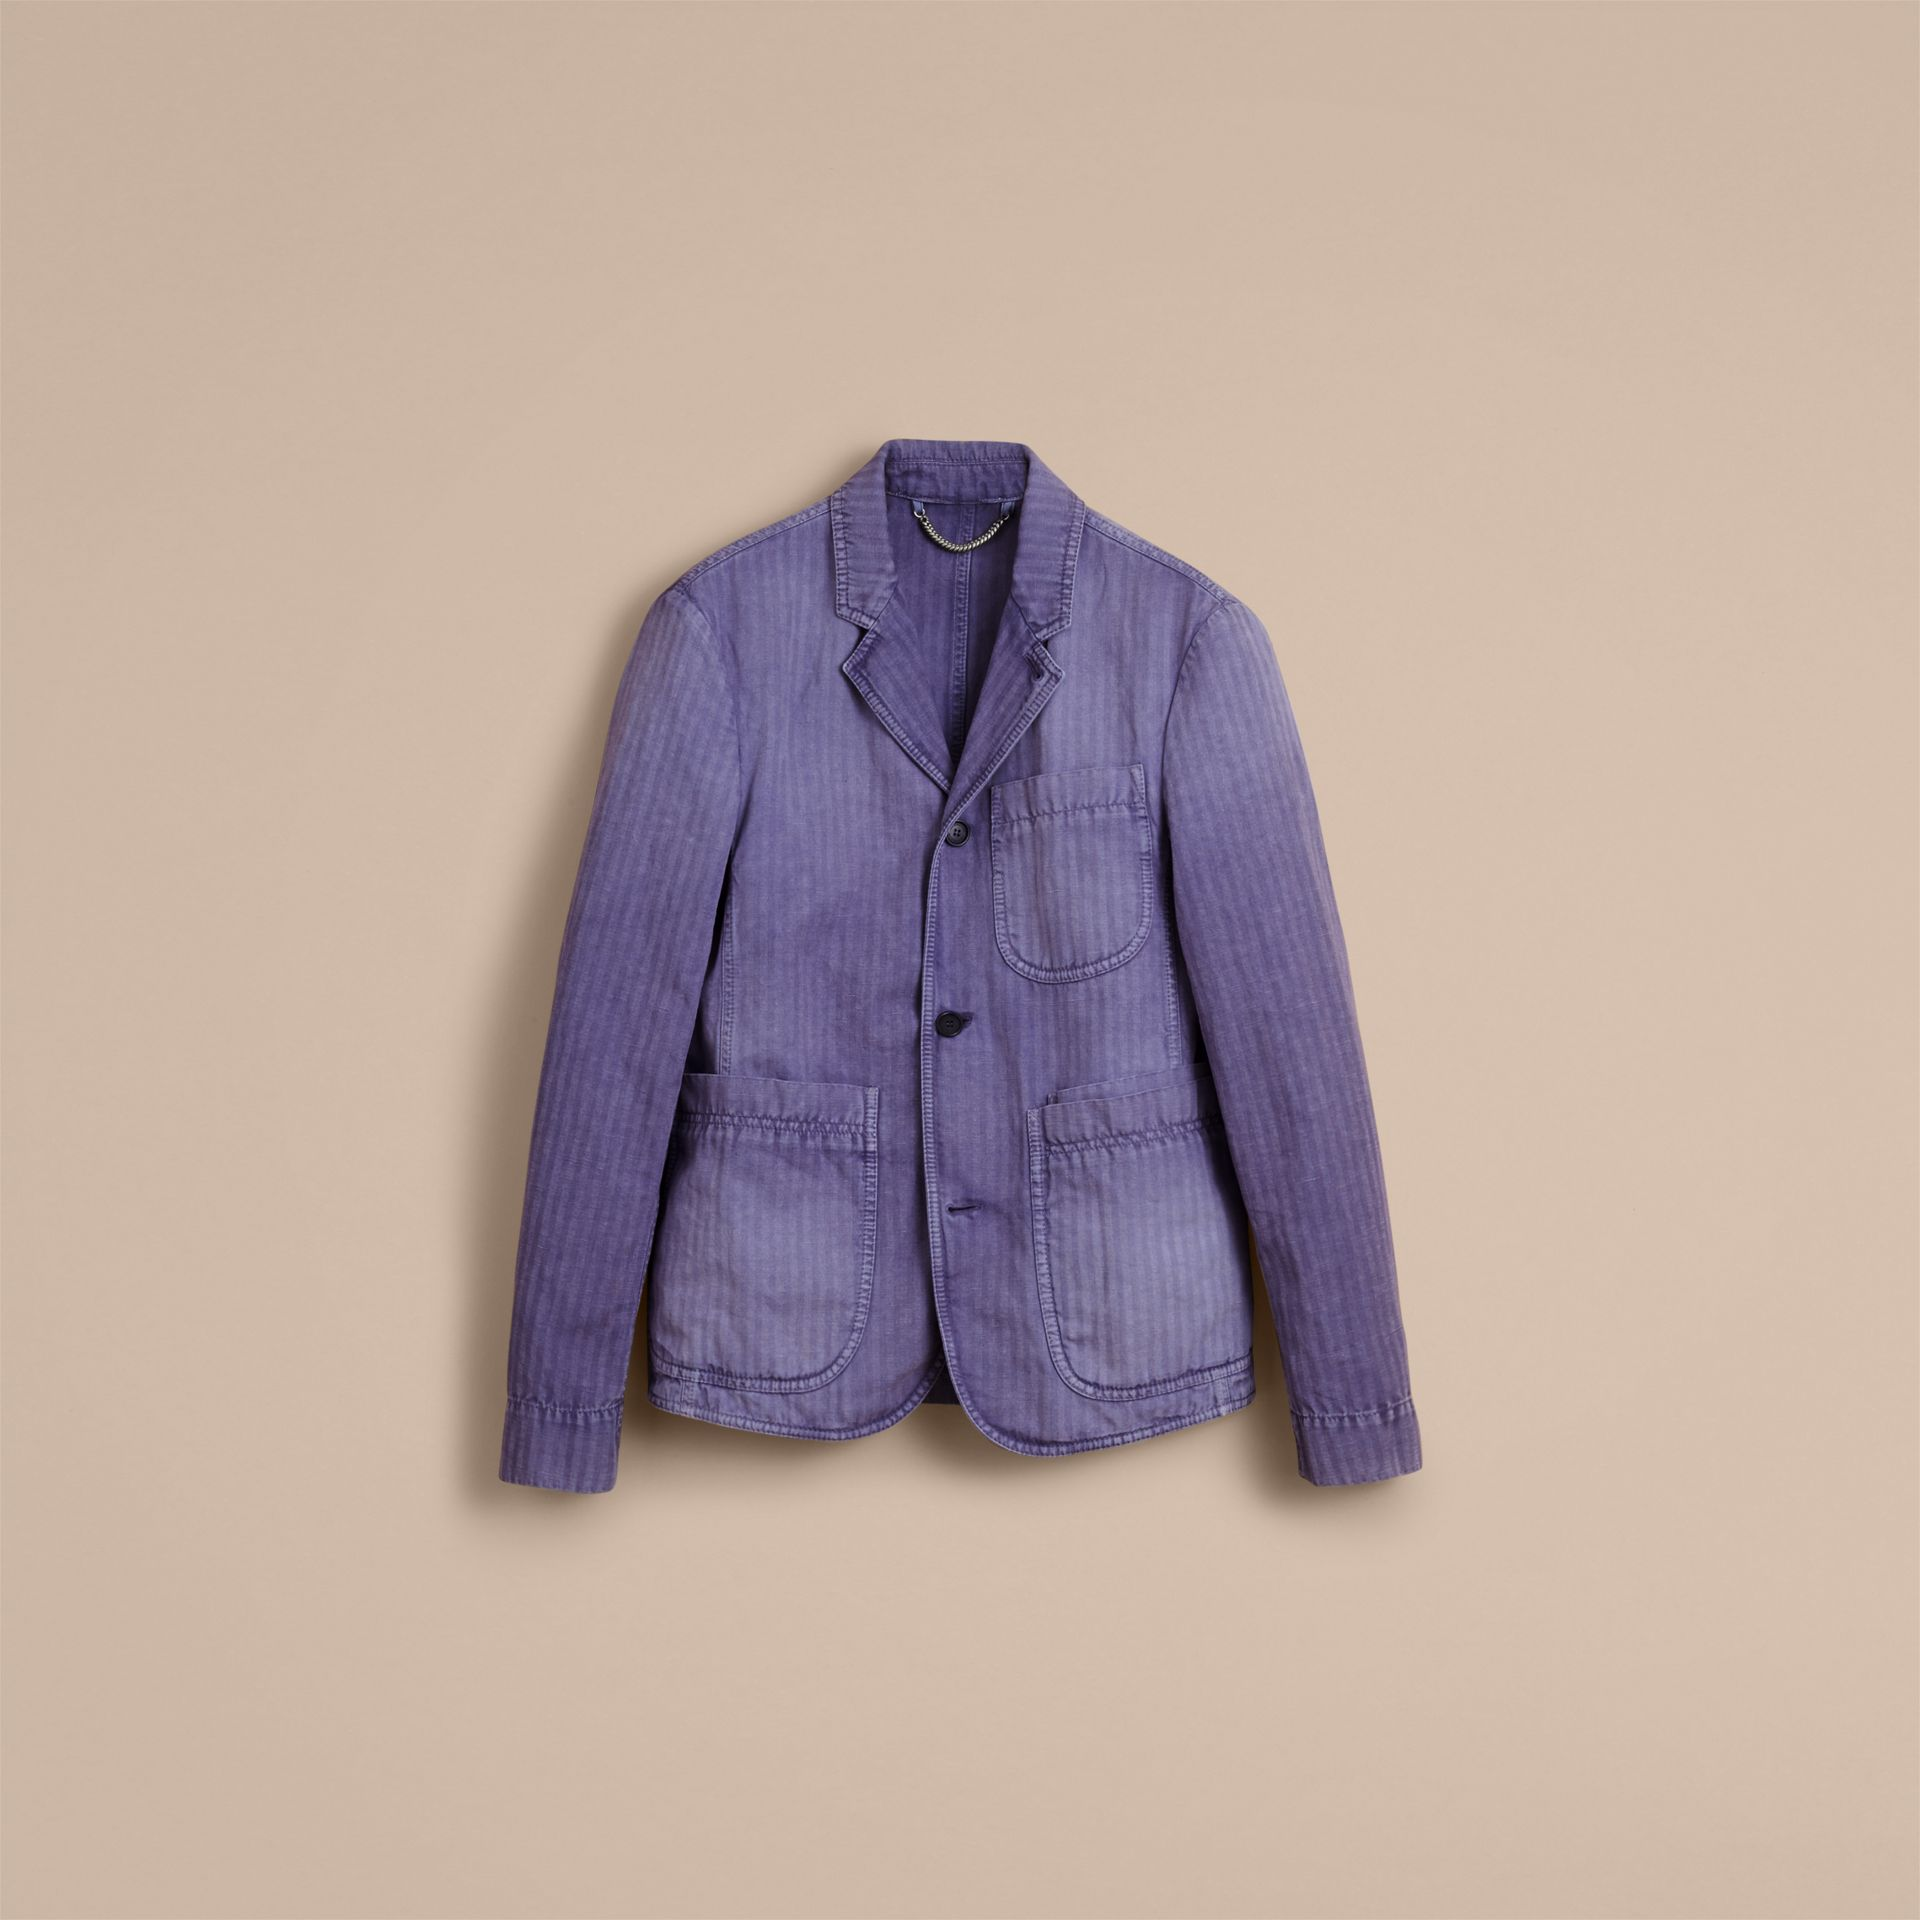 Herringbone Cotton Linen Workwear Jacket in Indigo - Men | Burberry - gallery image 3